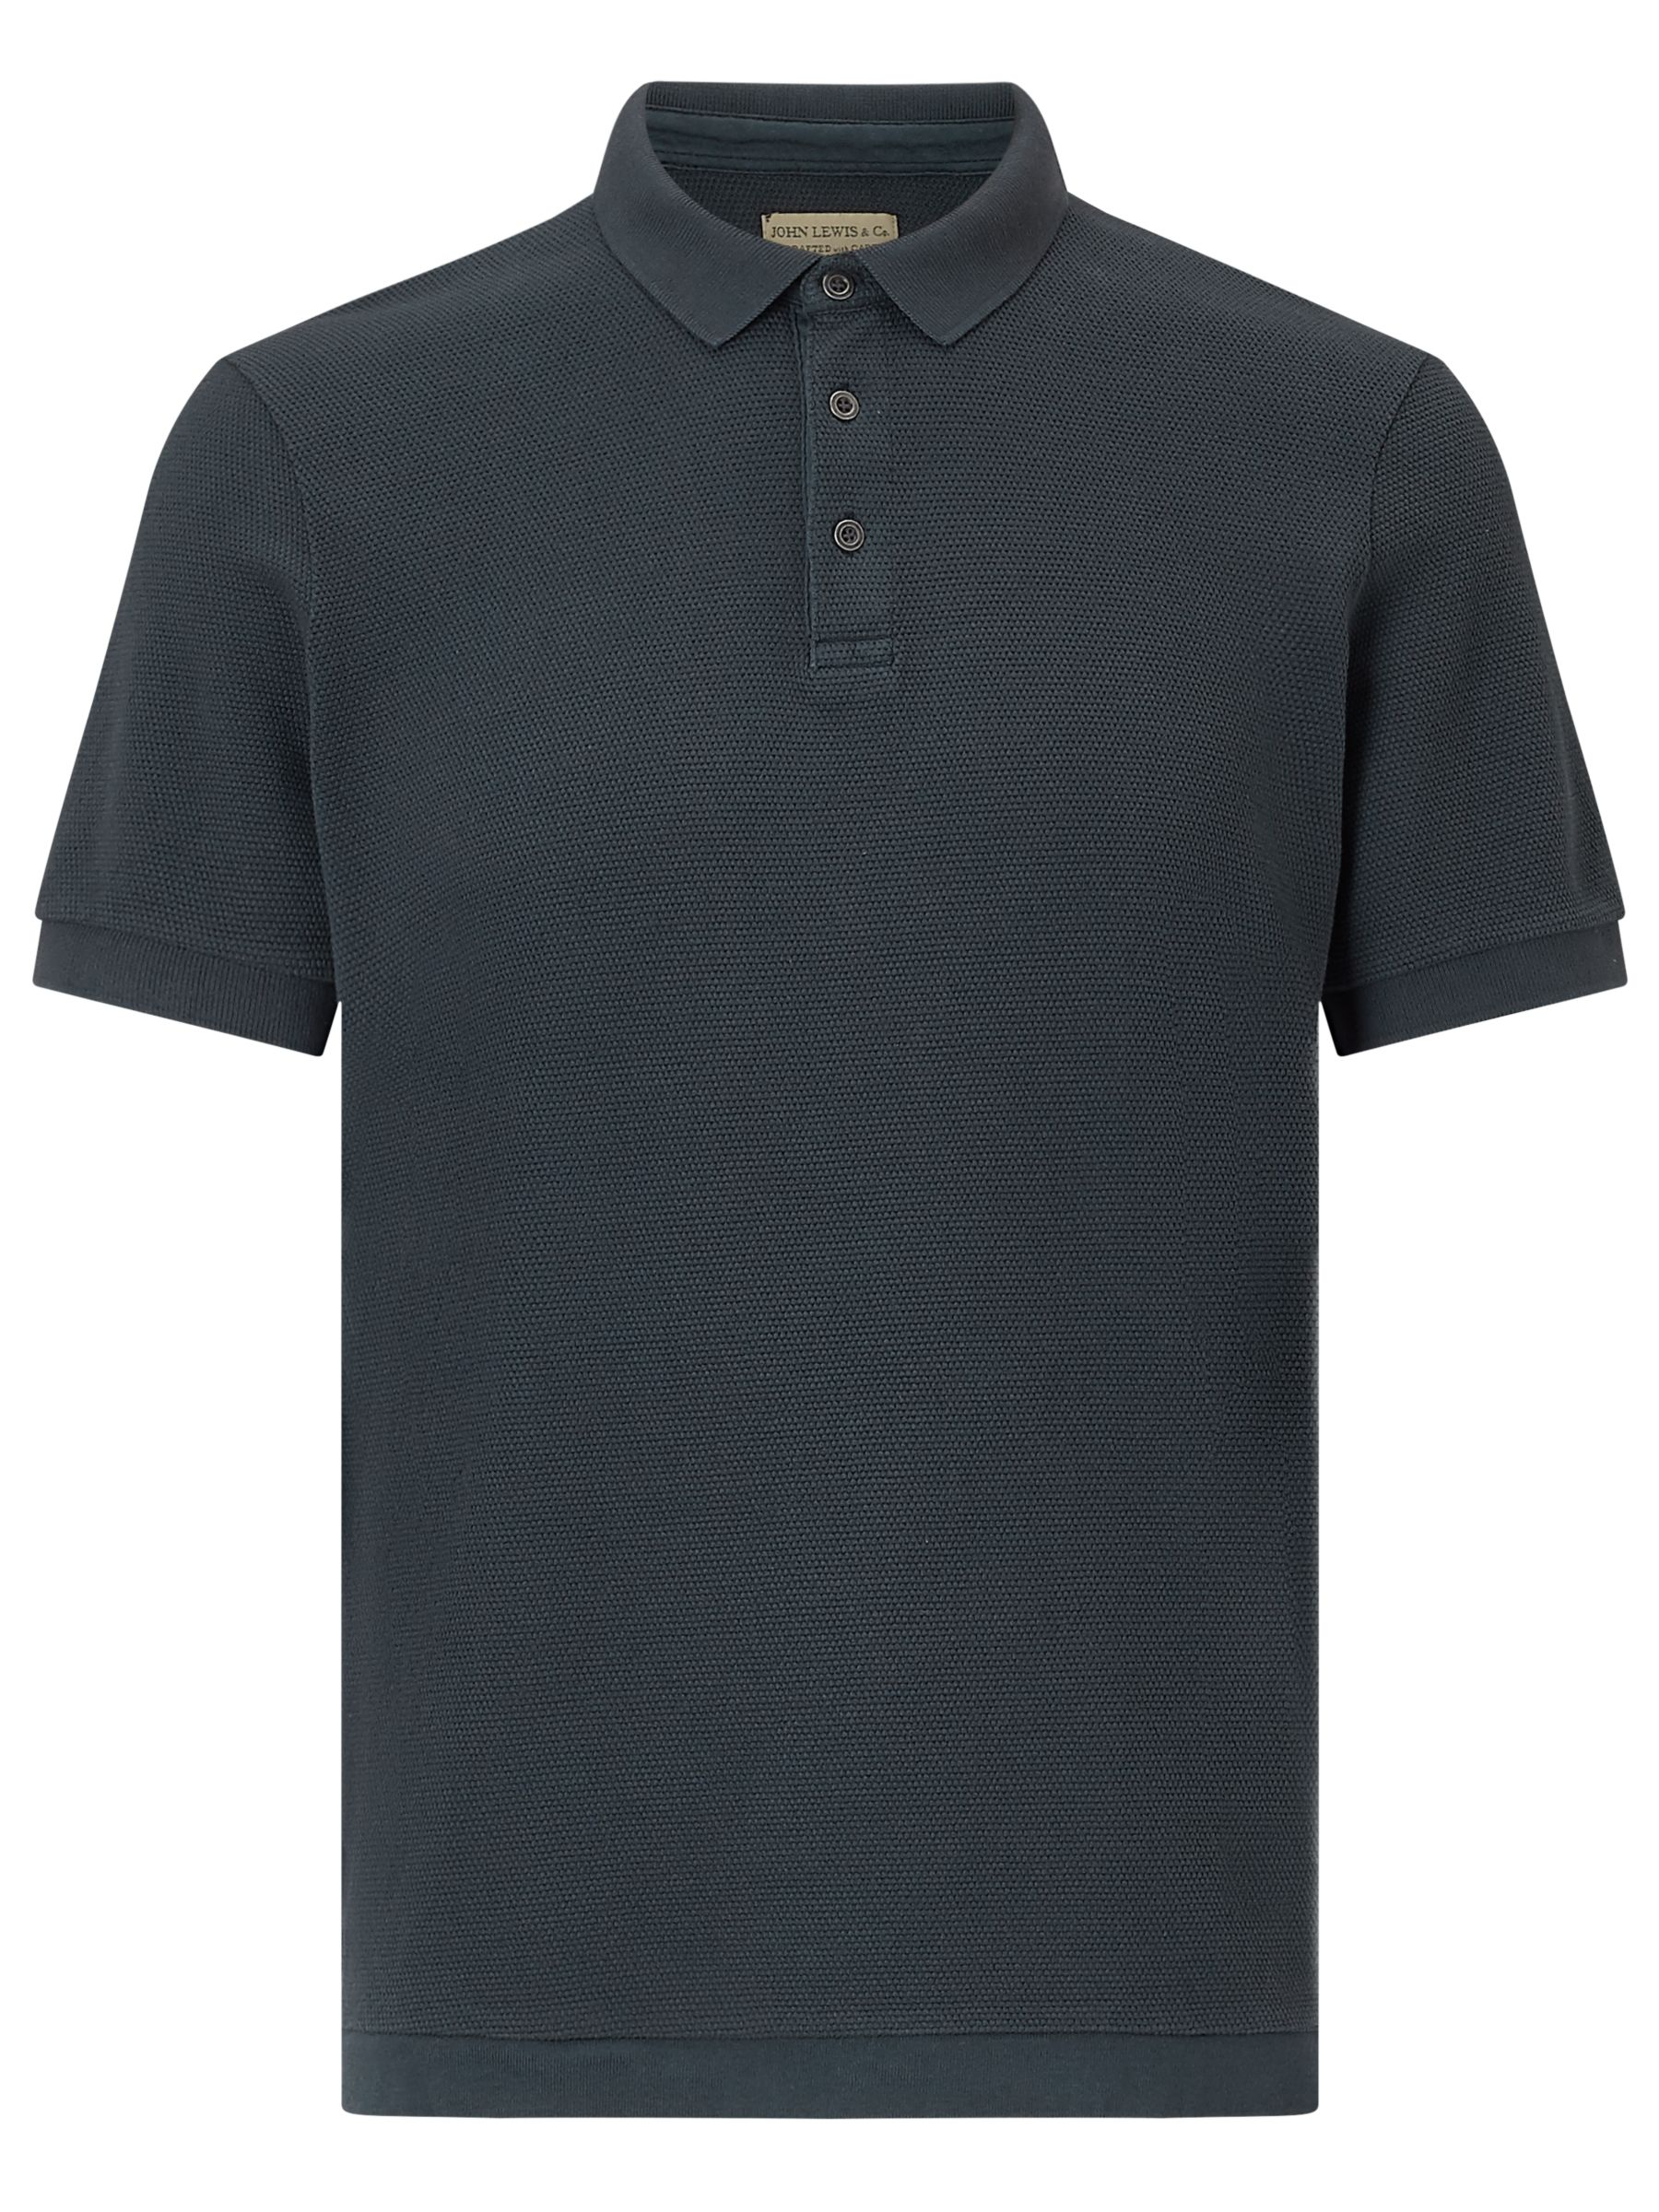 JOHN LEWIS & Co. JOHN LEWIS & Co. Knitted Texture Polo Shirt